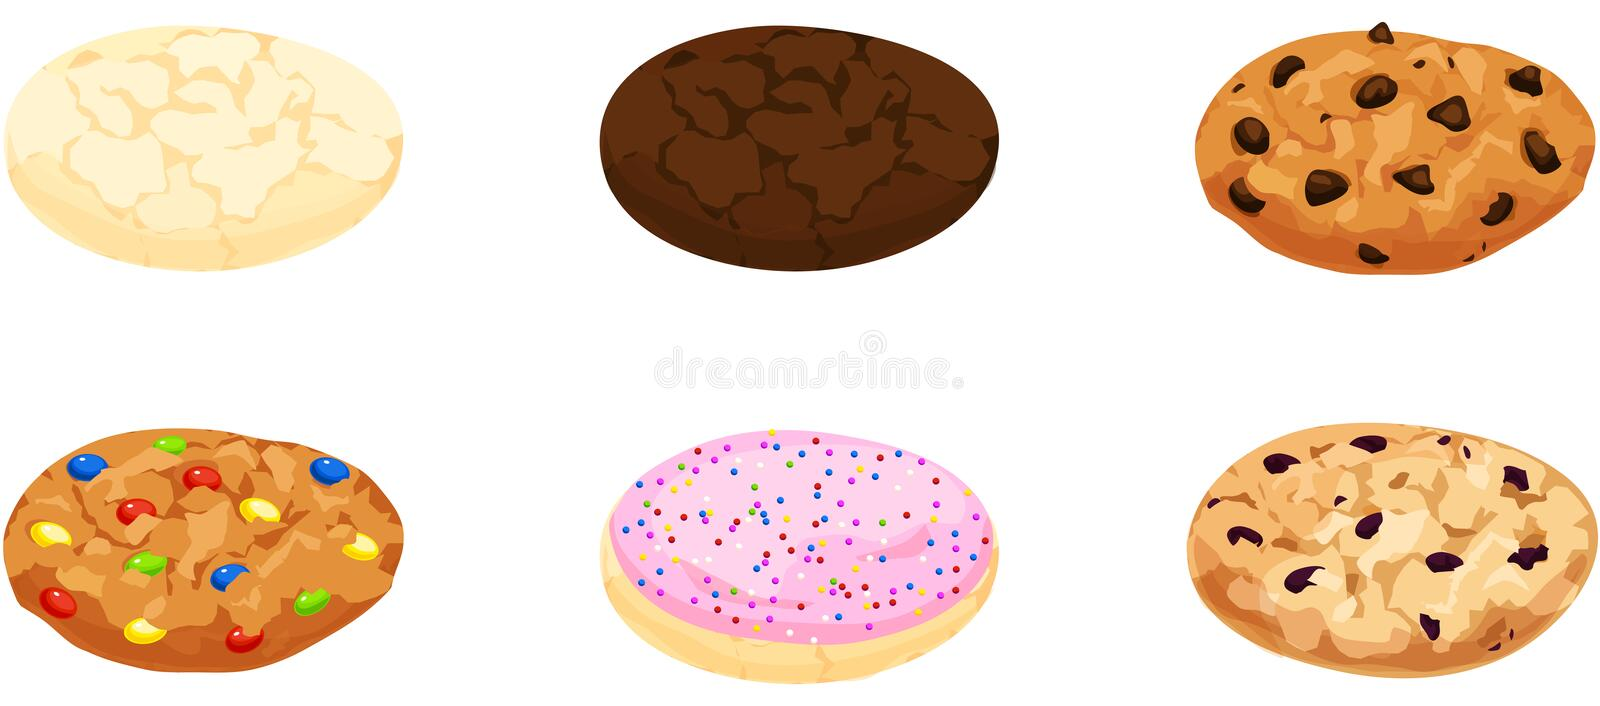 Cookies illustration libre de droits